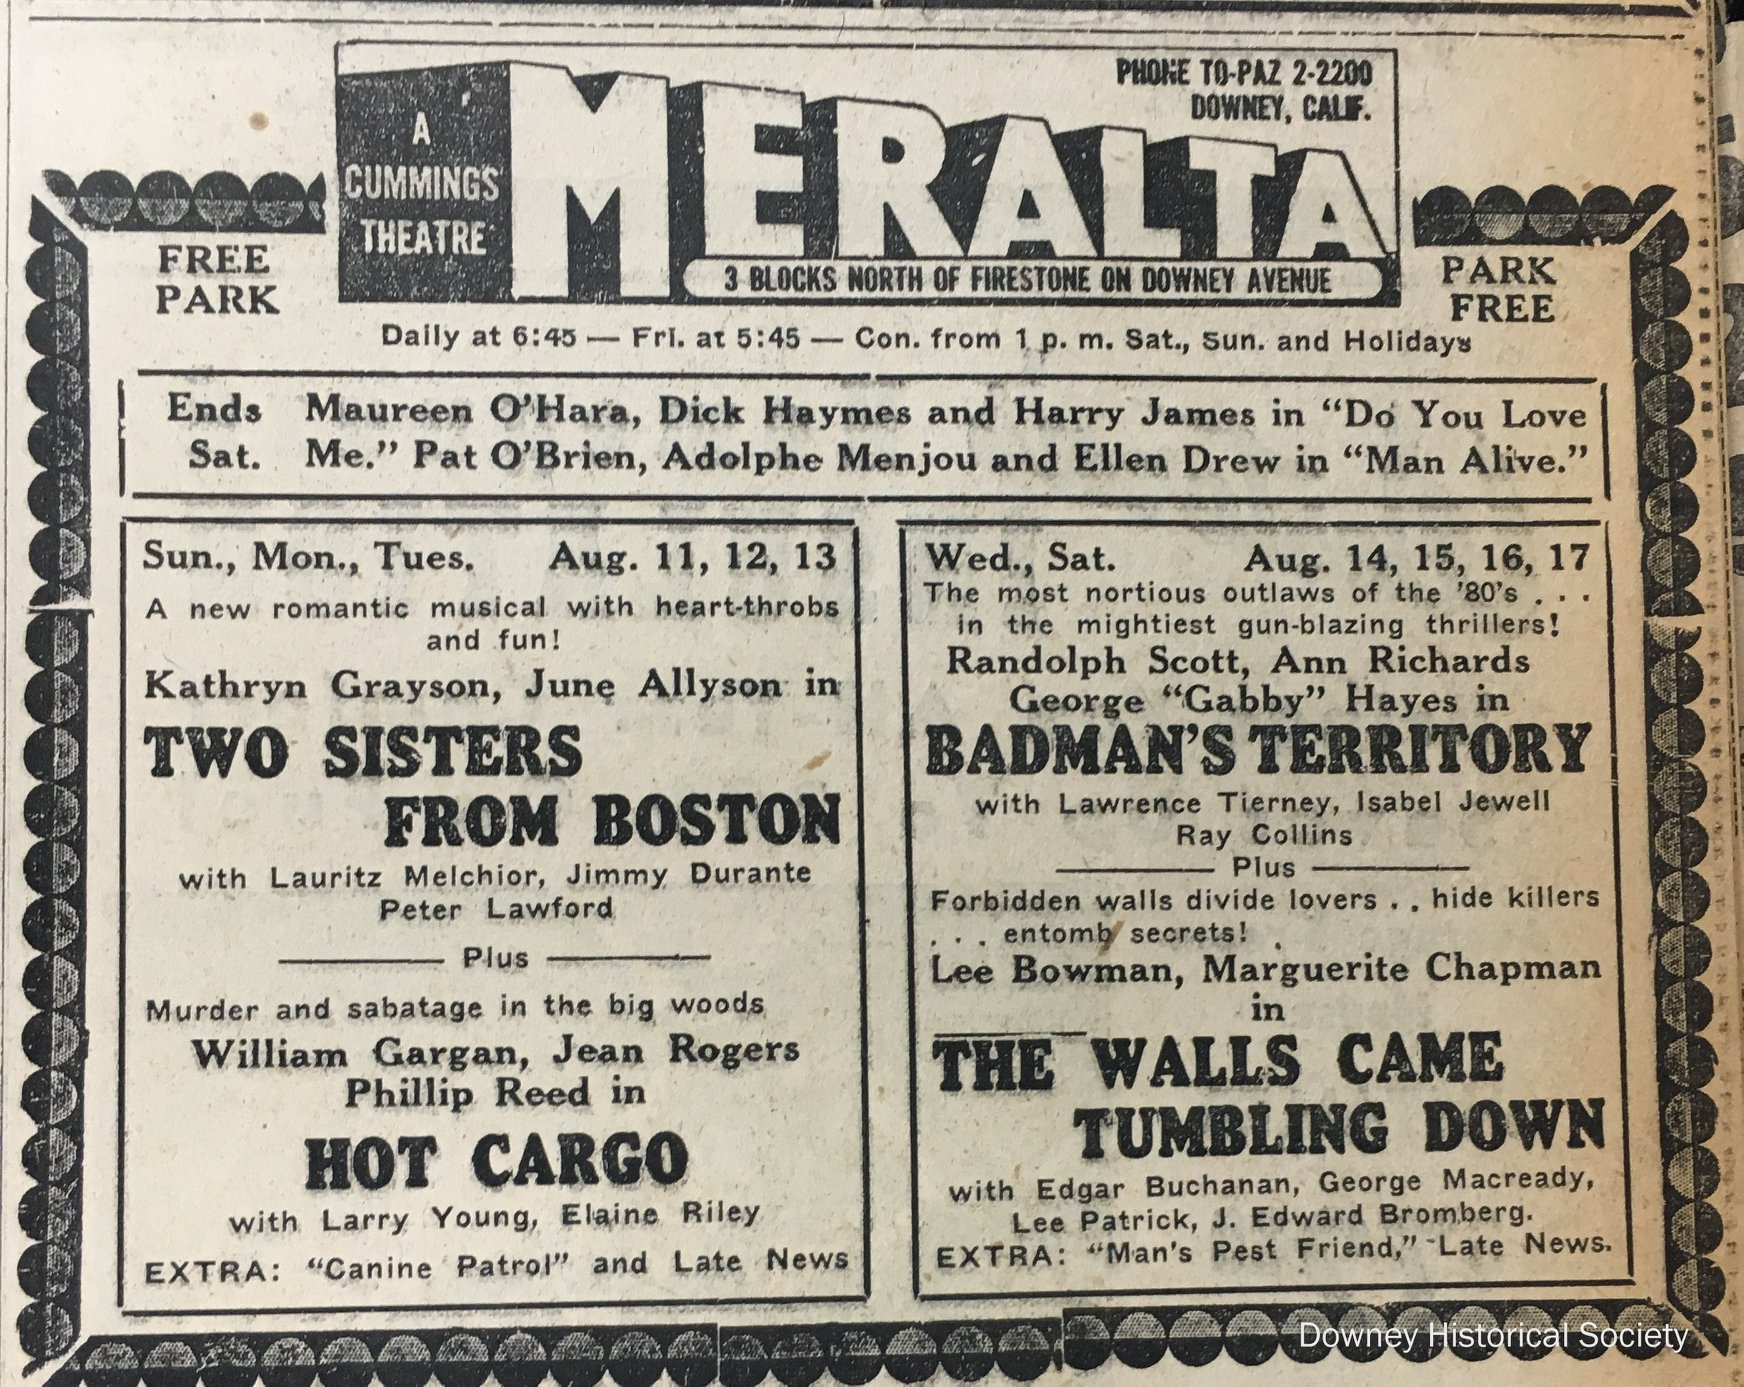 An advertisement for the Meralta Theatre that appeared in the Downey Live-Wire in 1946.